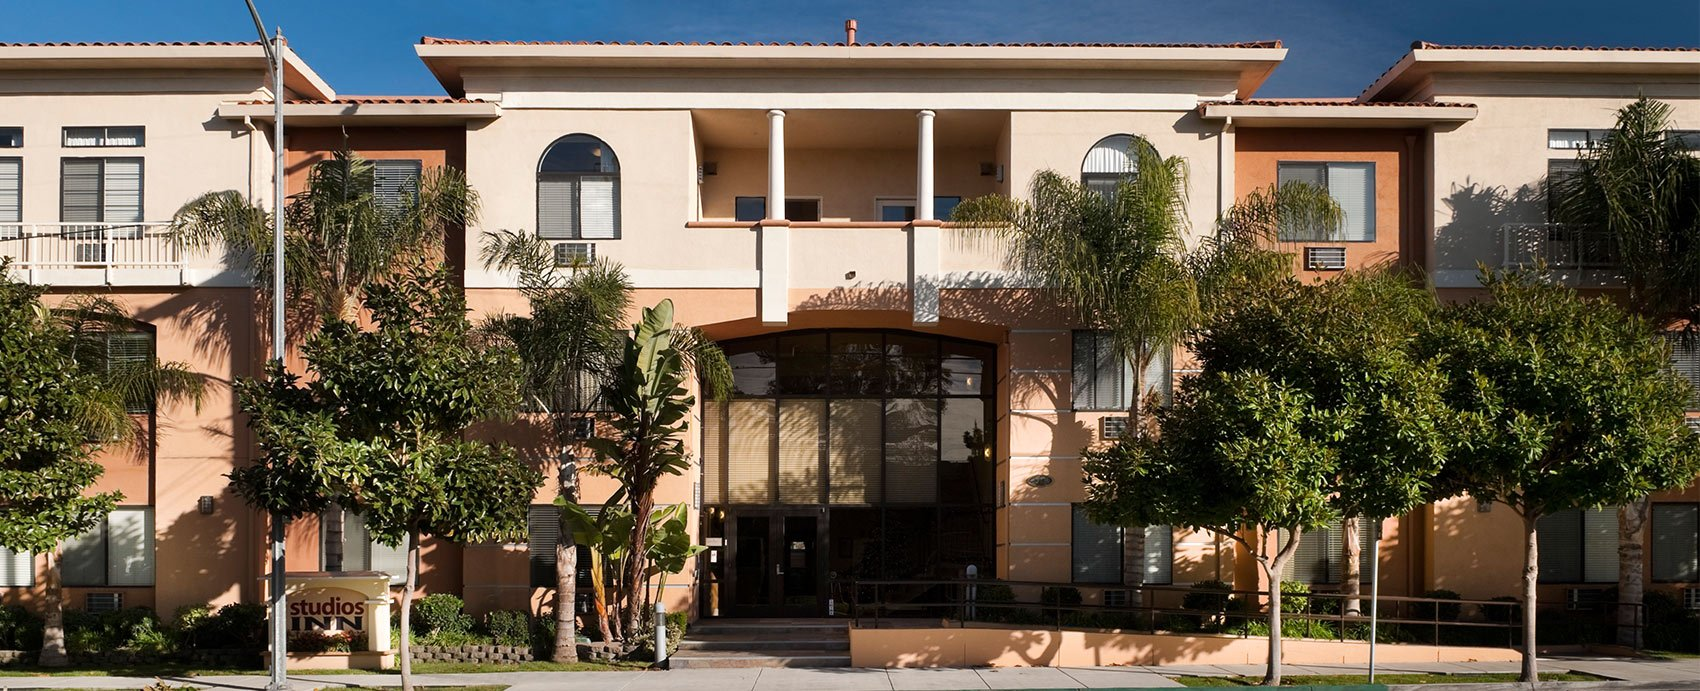 San Jose Extended Stay Hotel